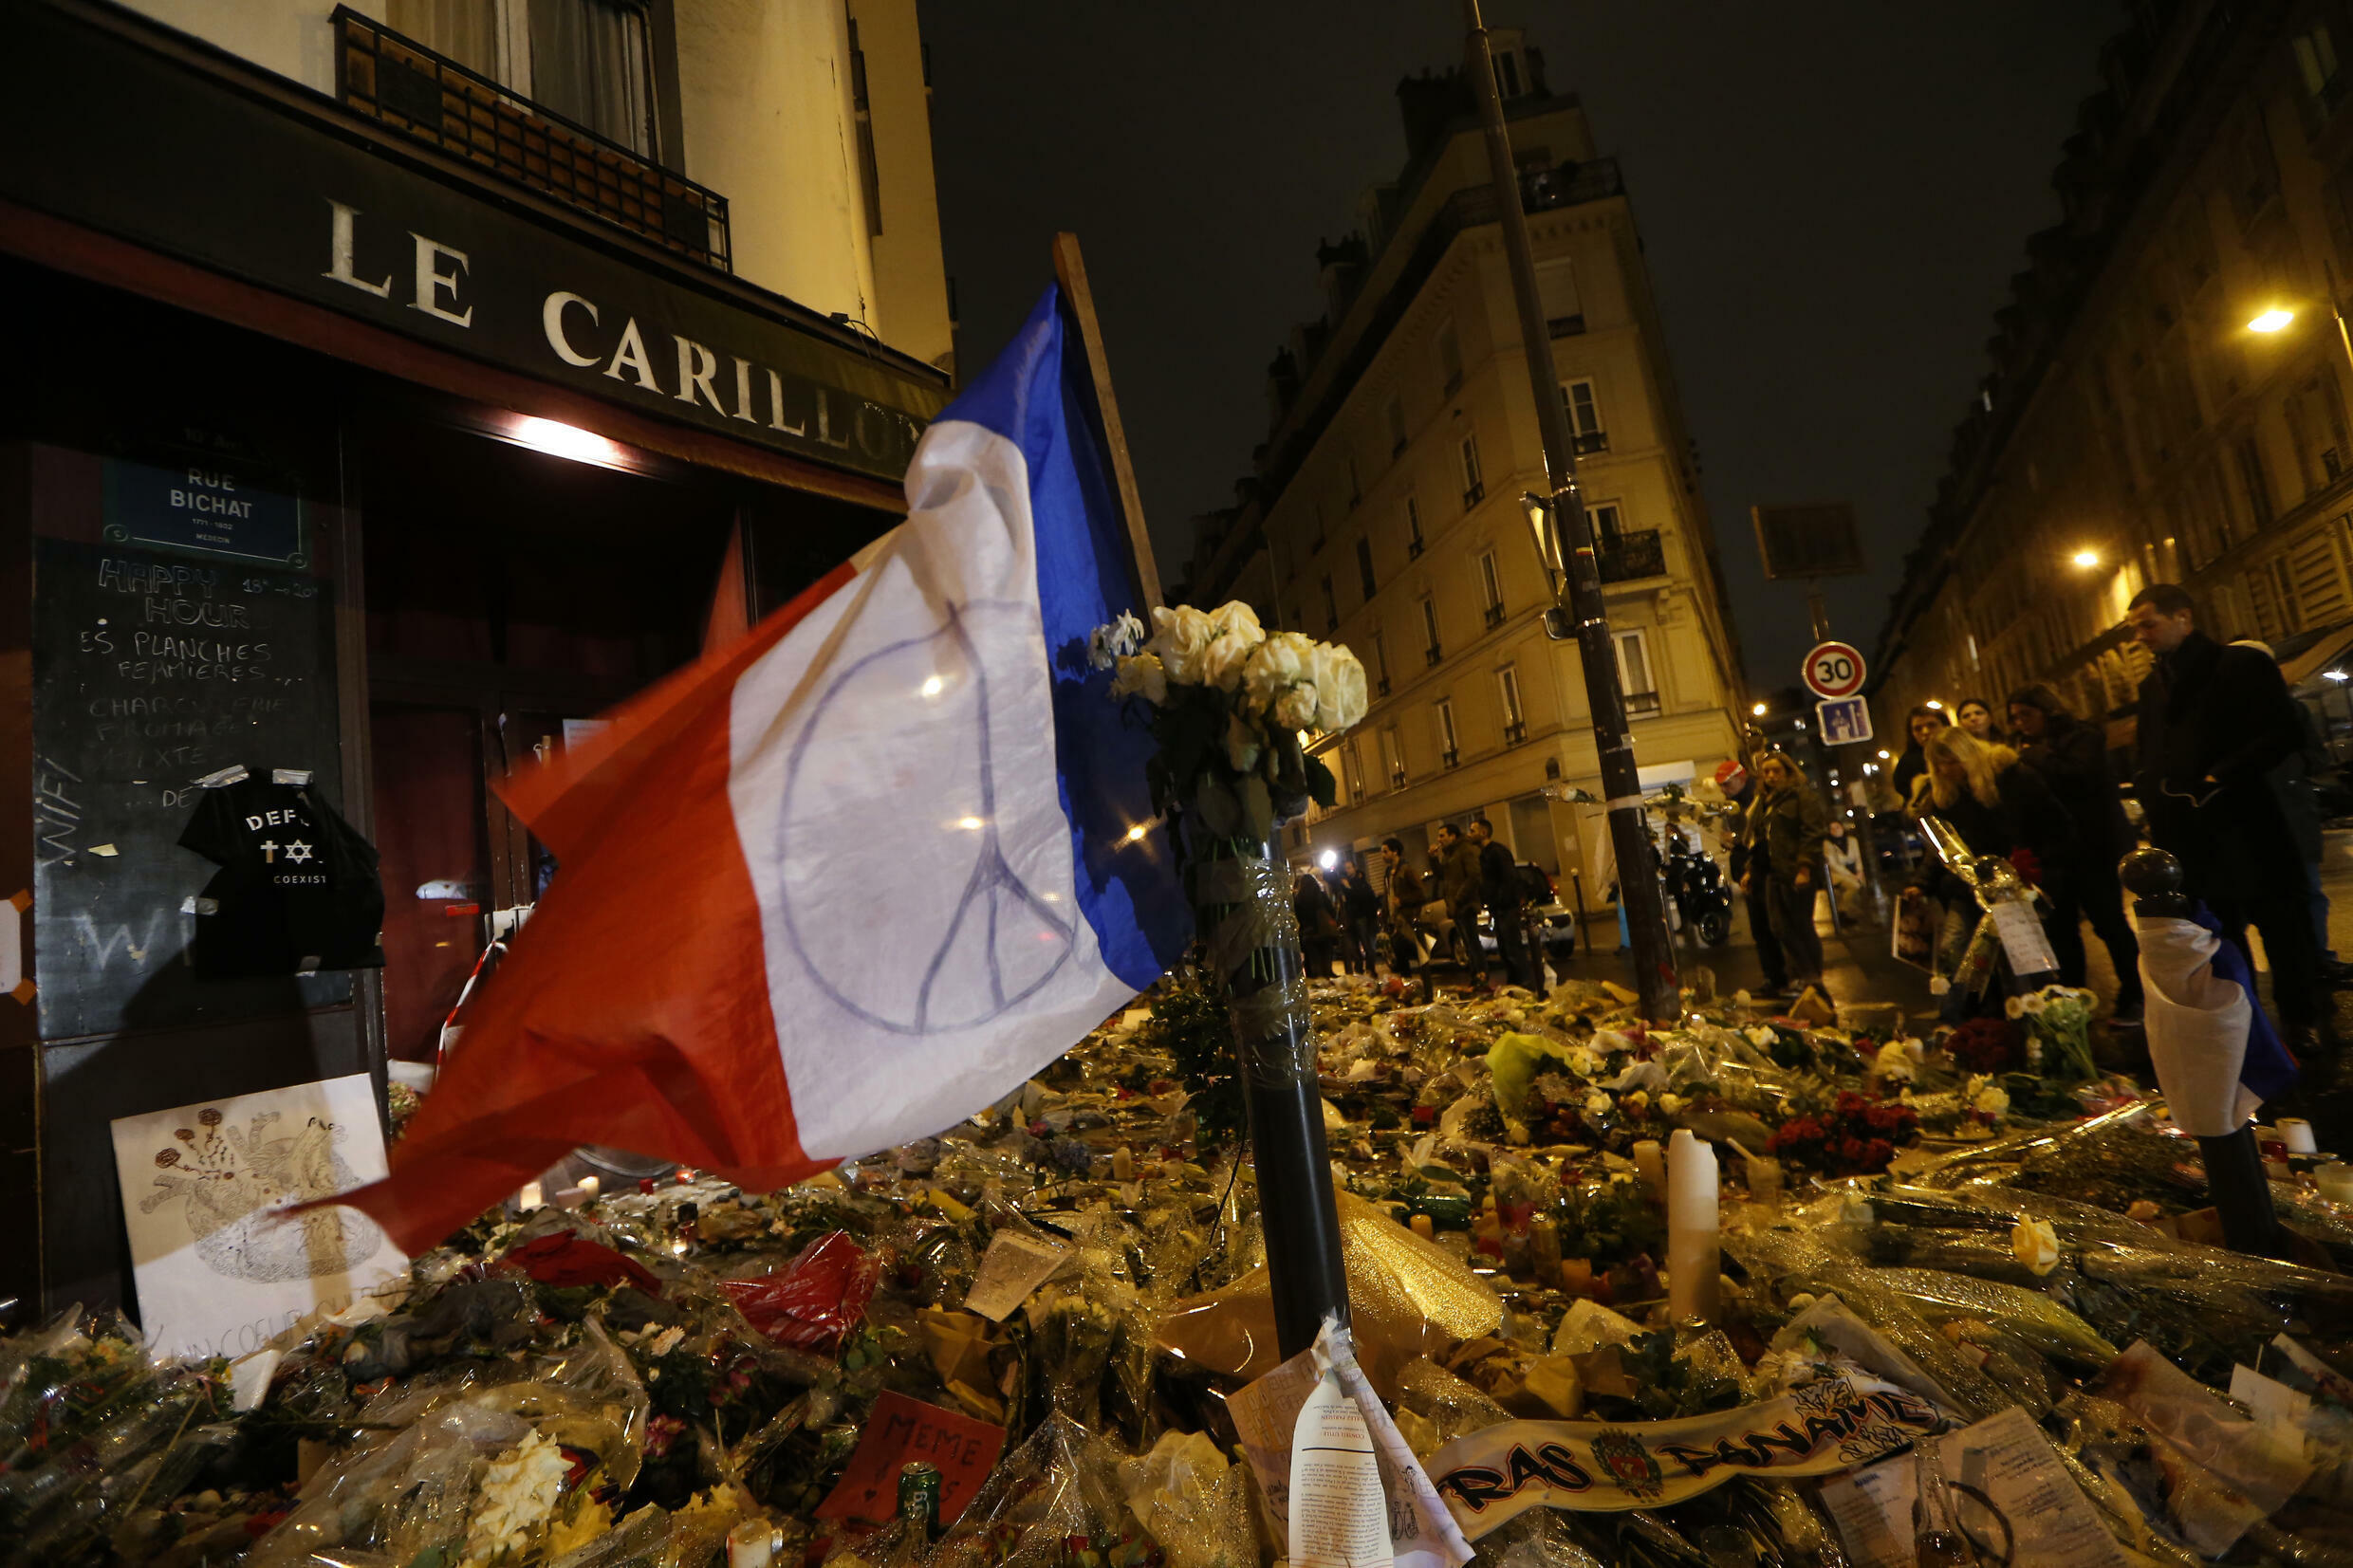 A makeshift memorial outside the Carillon bar in Paris, one of the sites of carnage on November 13, 2015